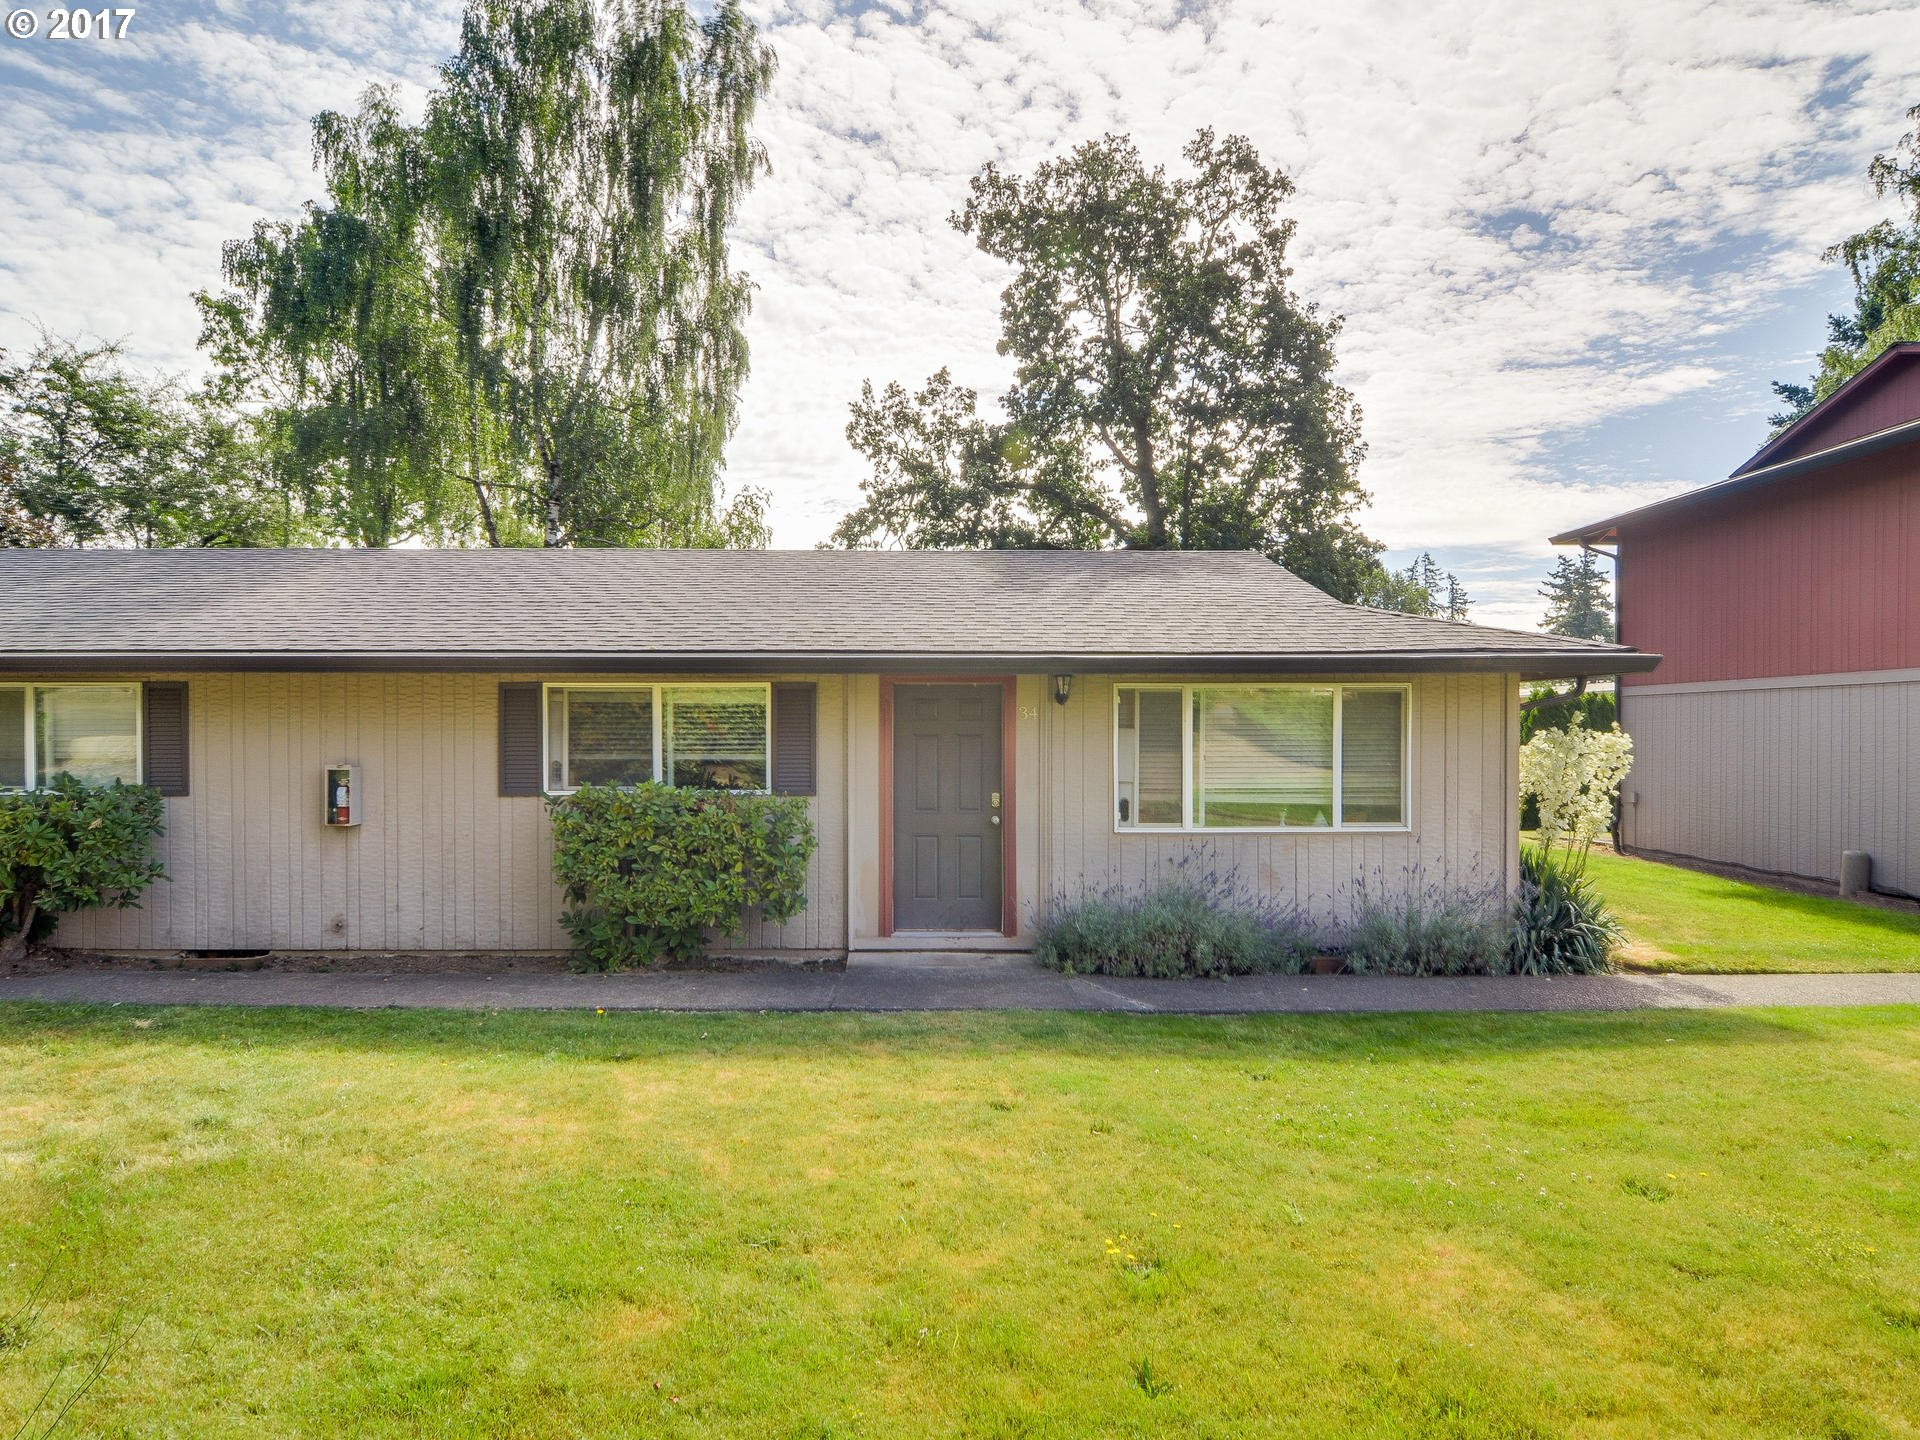 14655 SW 76TH AVE 34, Tigard, OR 97224